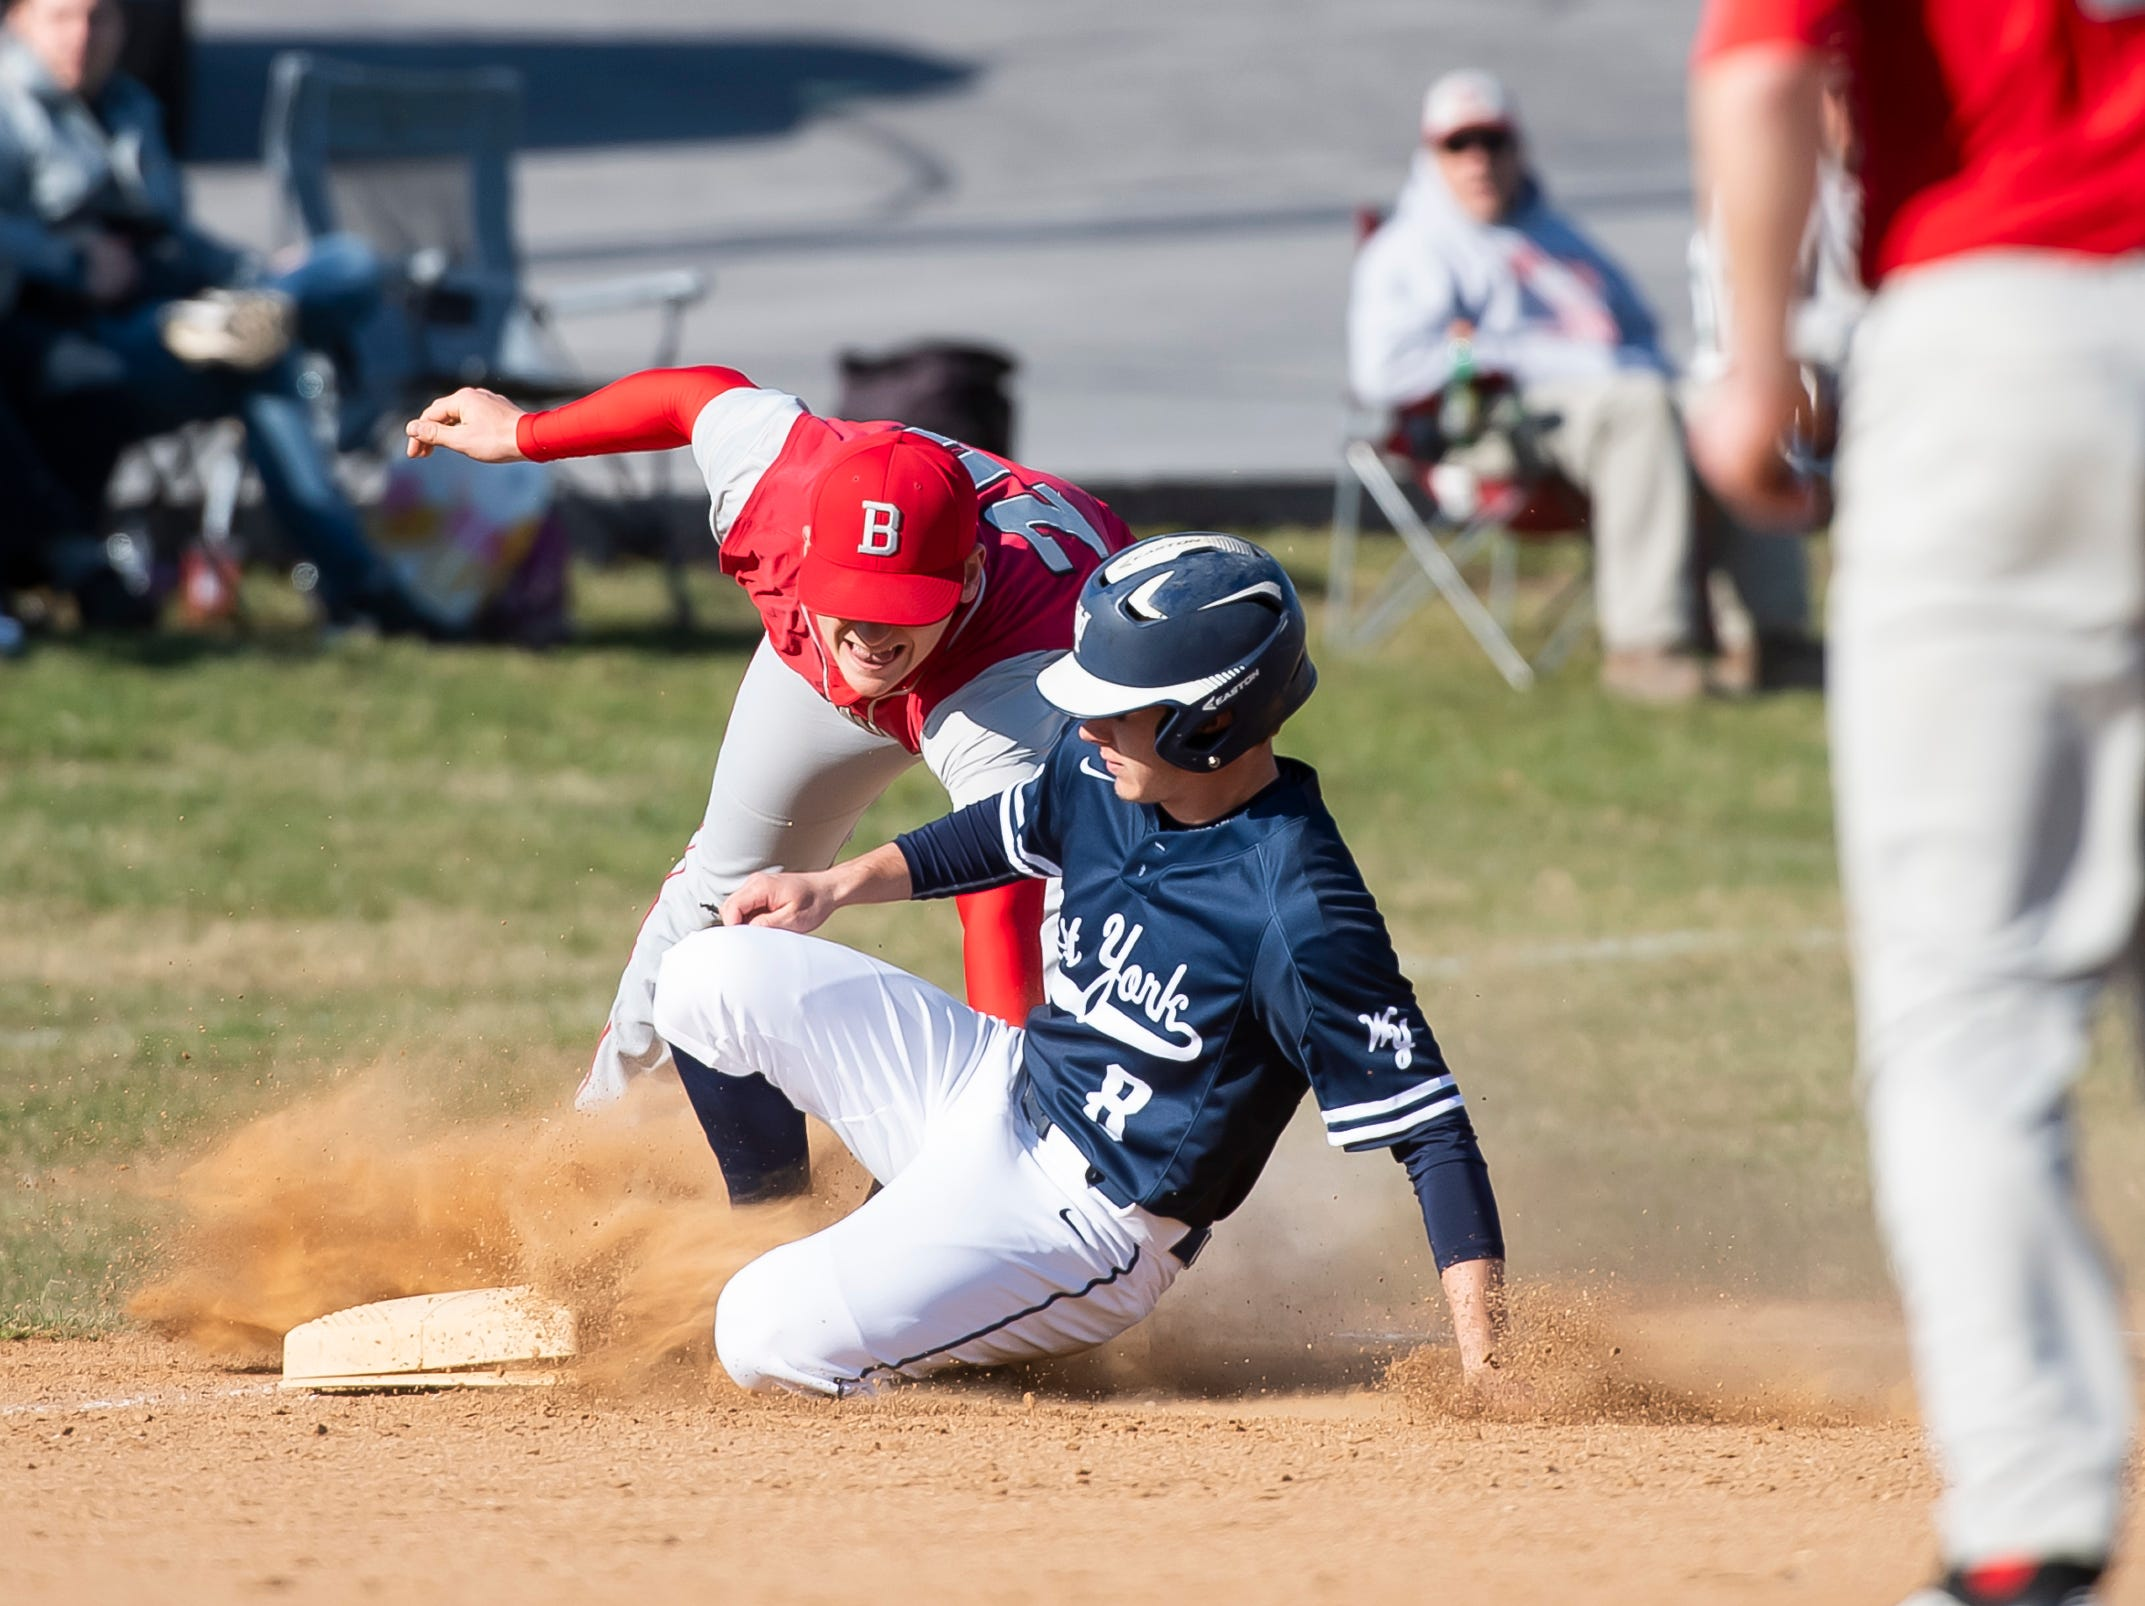 West York's Trent Ketterman slides safely into third base during a YAIAA baseball game against Bermudian Springs on Wednesday, April 3, 2019. The Bulldogs won 14-11.